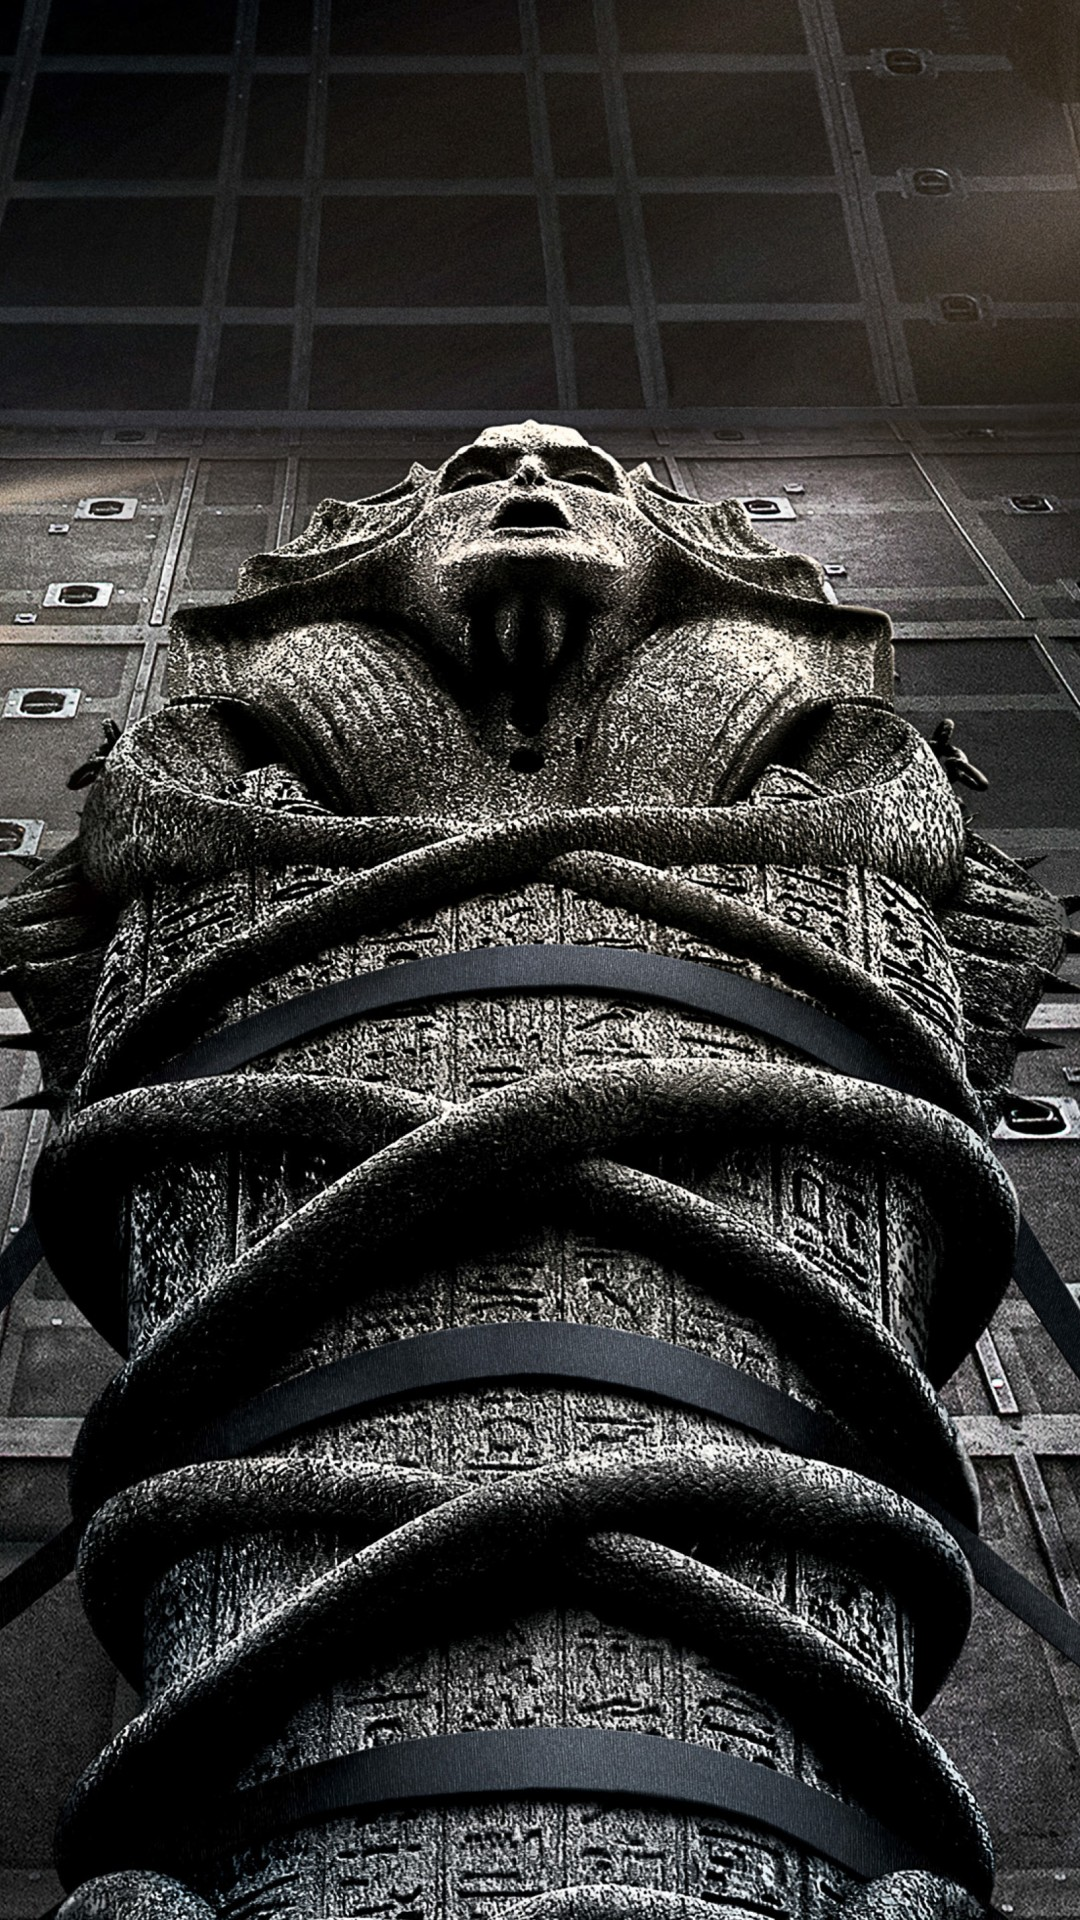 The Mummy 2017 4k Full Hd Wallpaper For Desktop And Mobiles Iphone 6